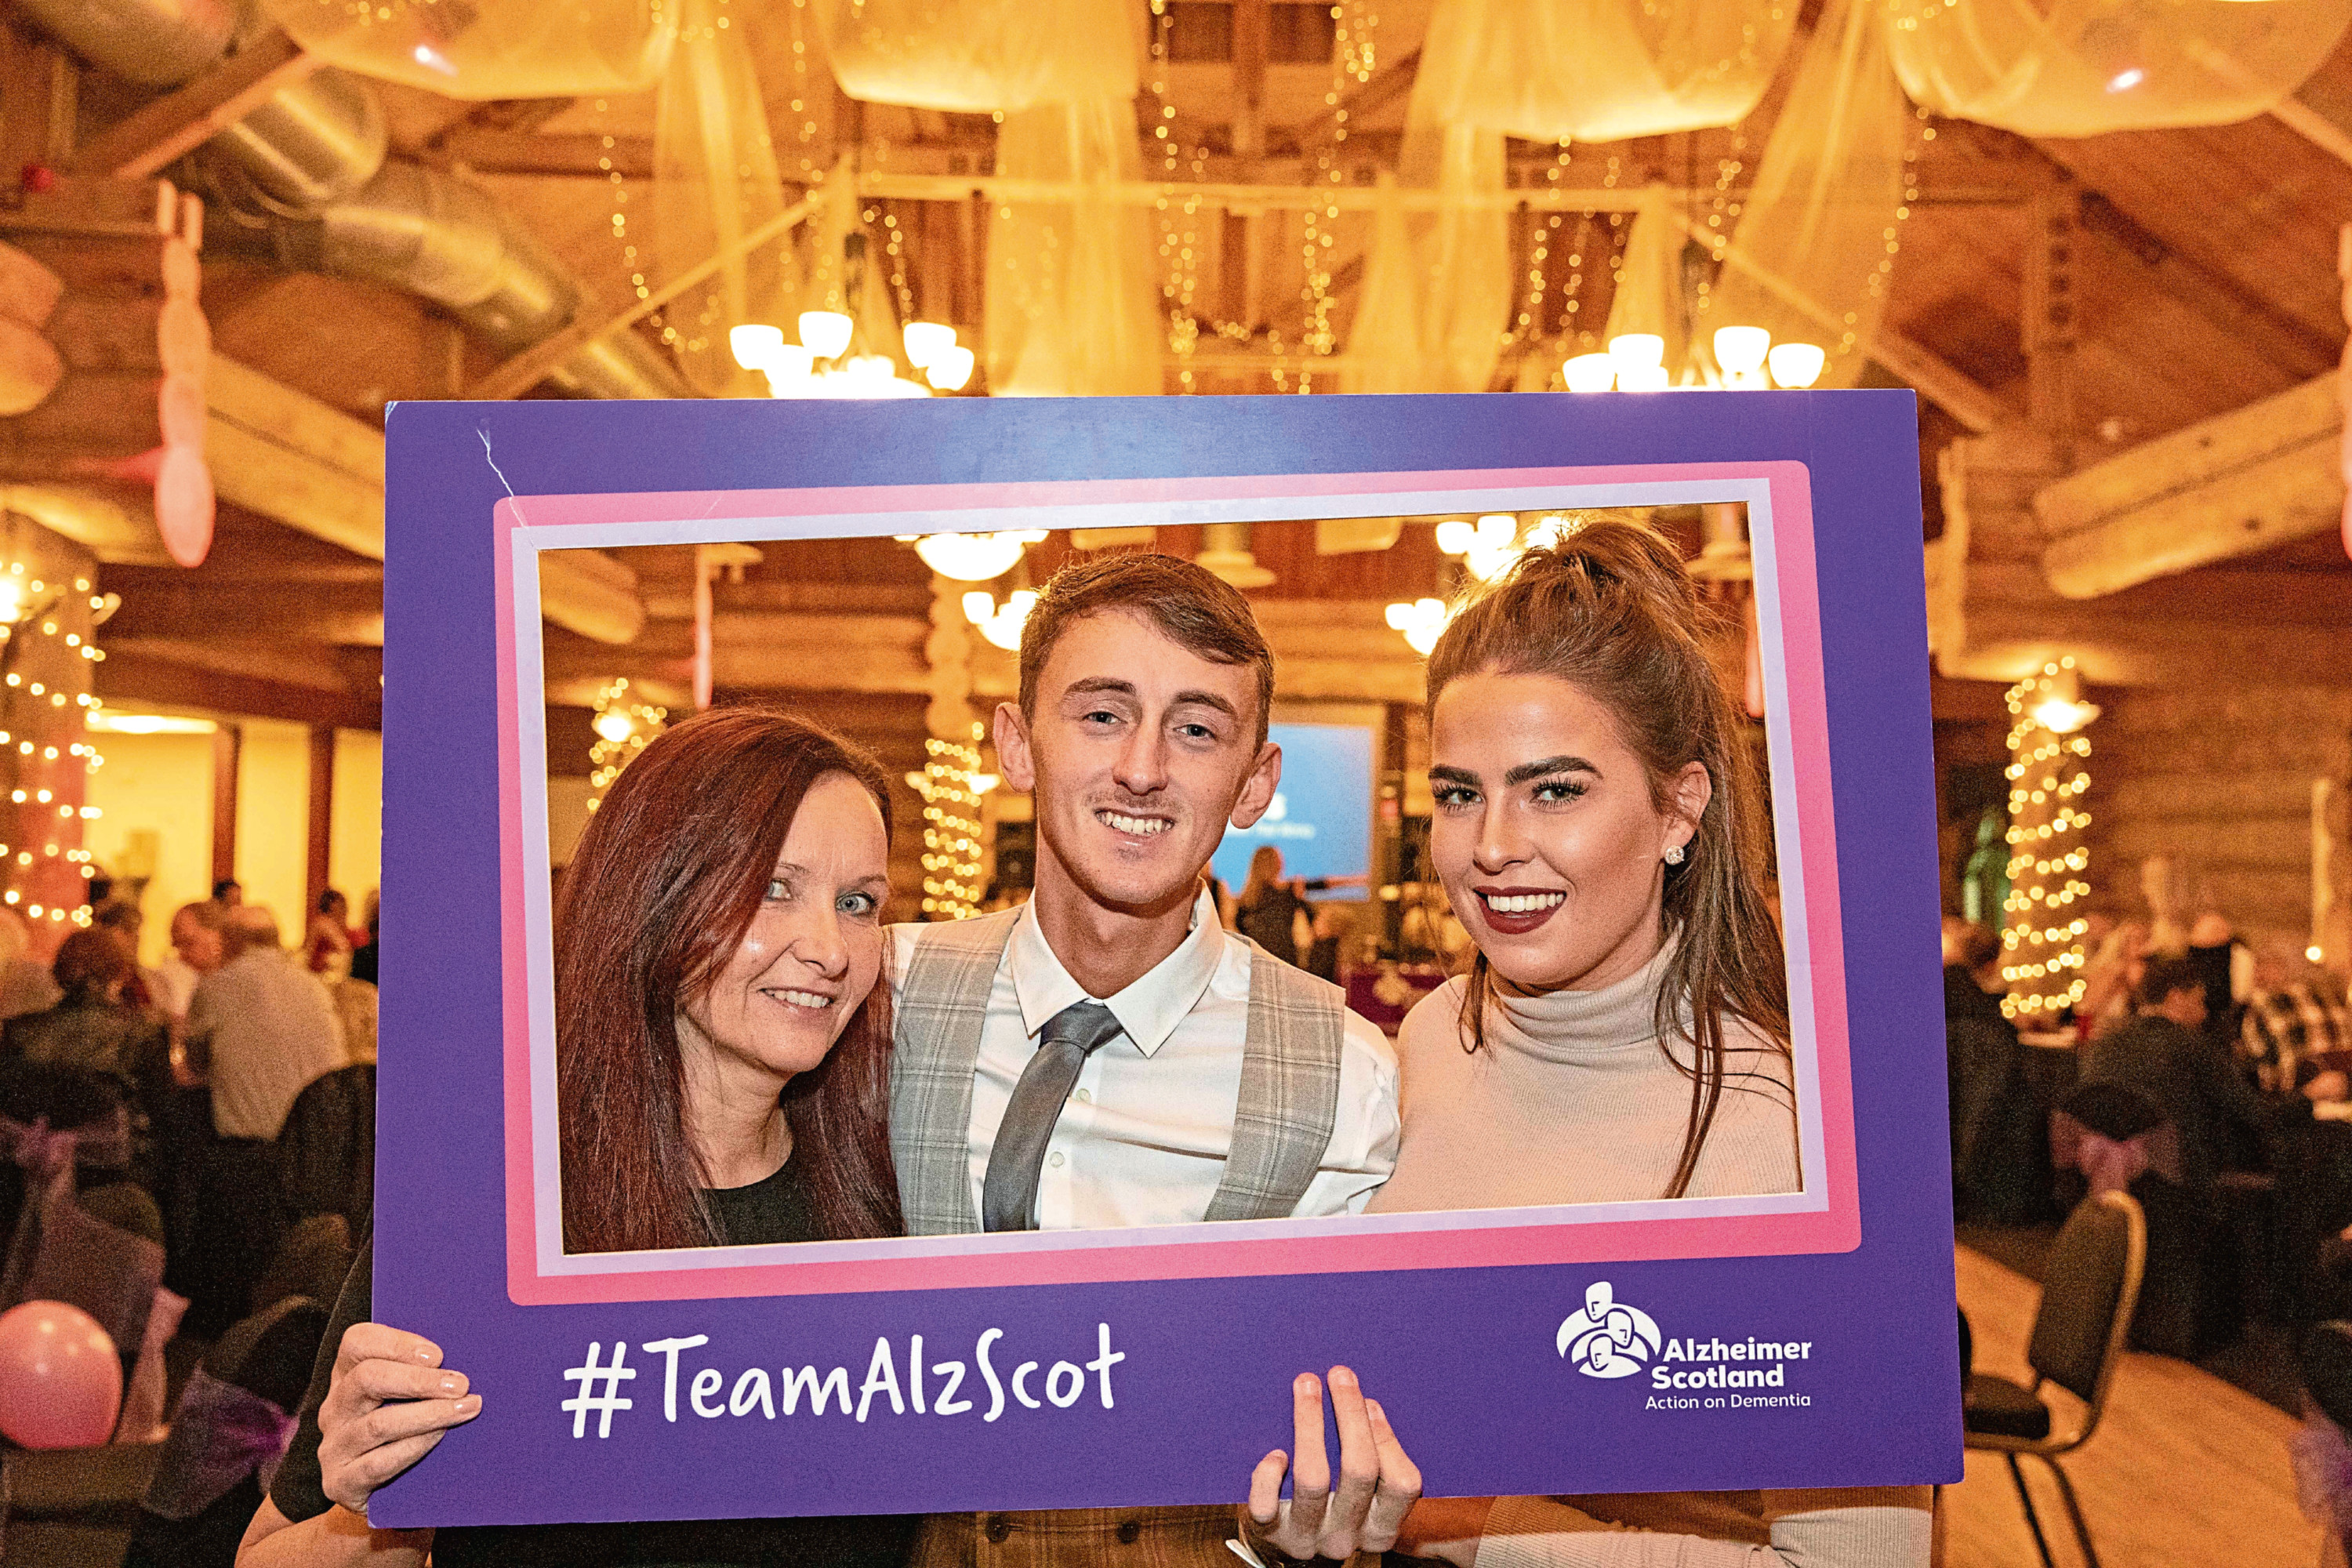 Angie Fairweather, Daniel and Beth Jowett at the event